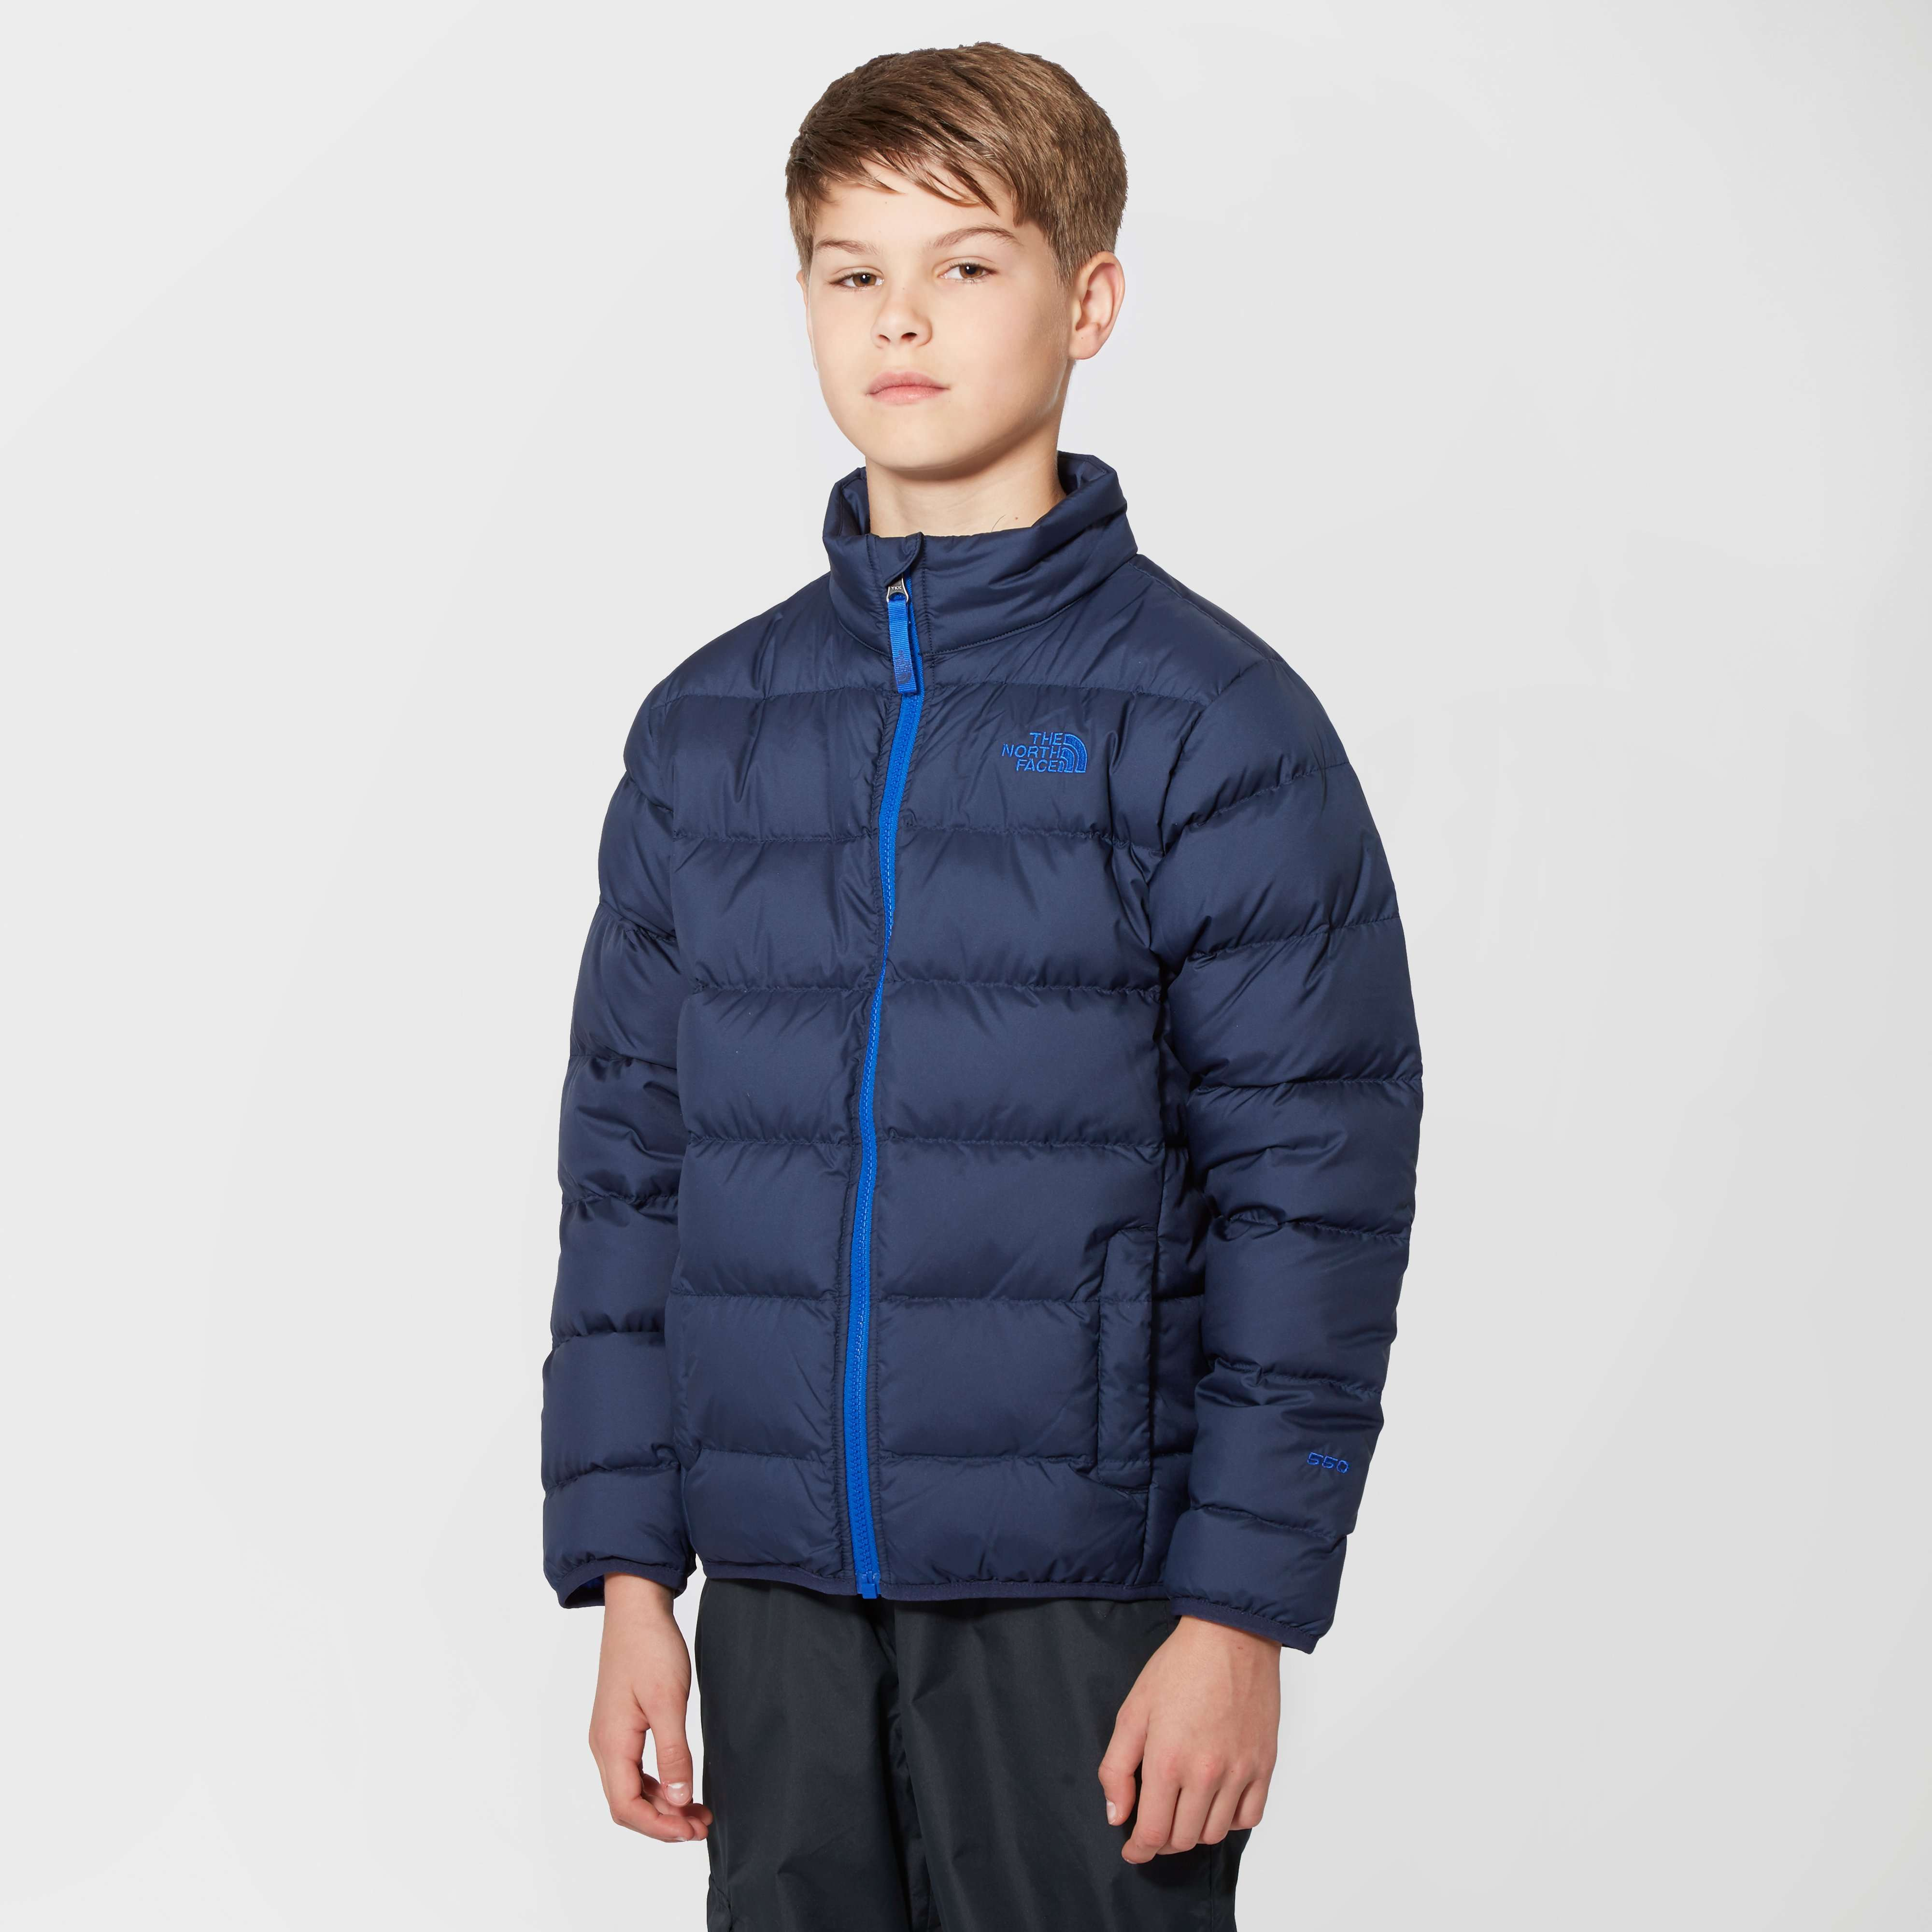 THE NORTH FACE Boy's Andes Jacket